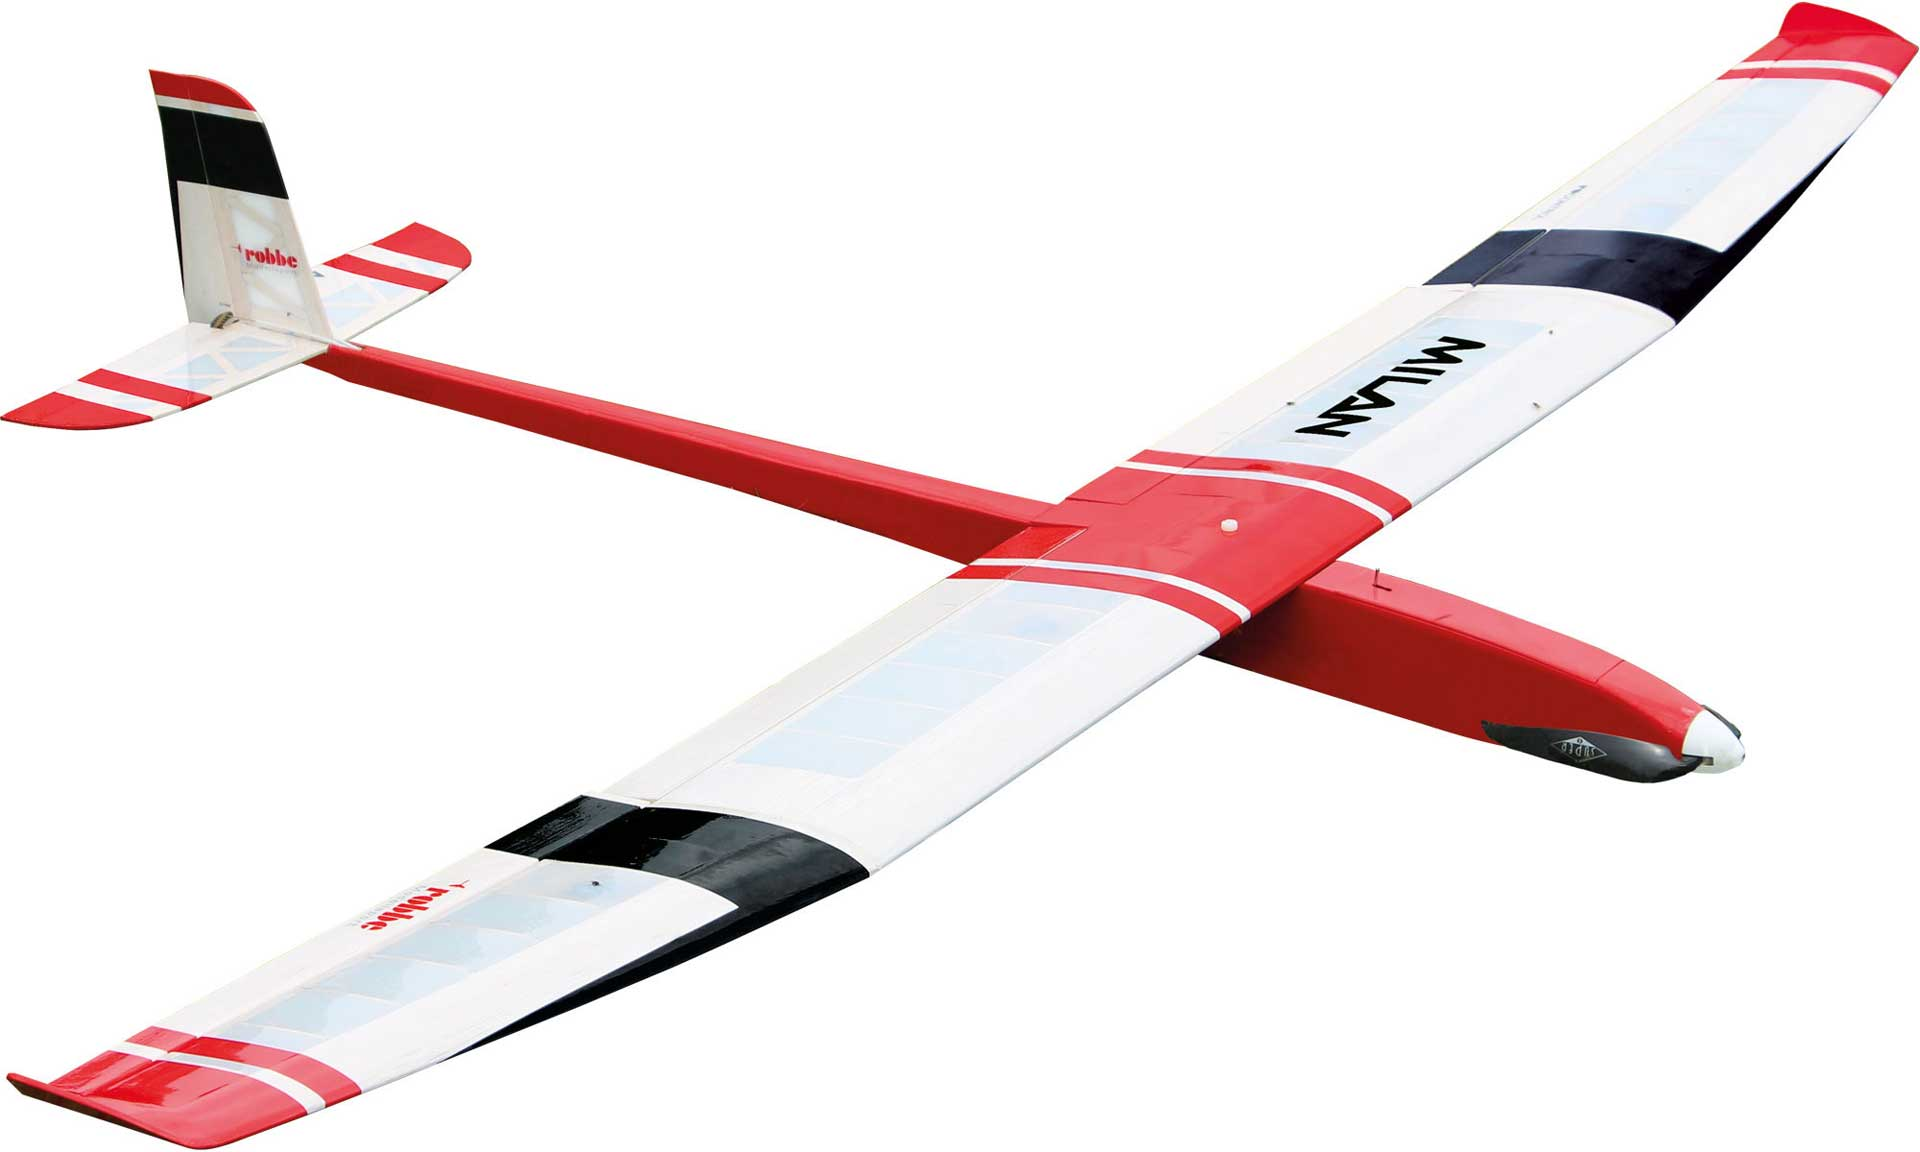 ROBBE MILAN ARF HIGH-PERFORMANCE GLIDER